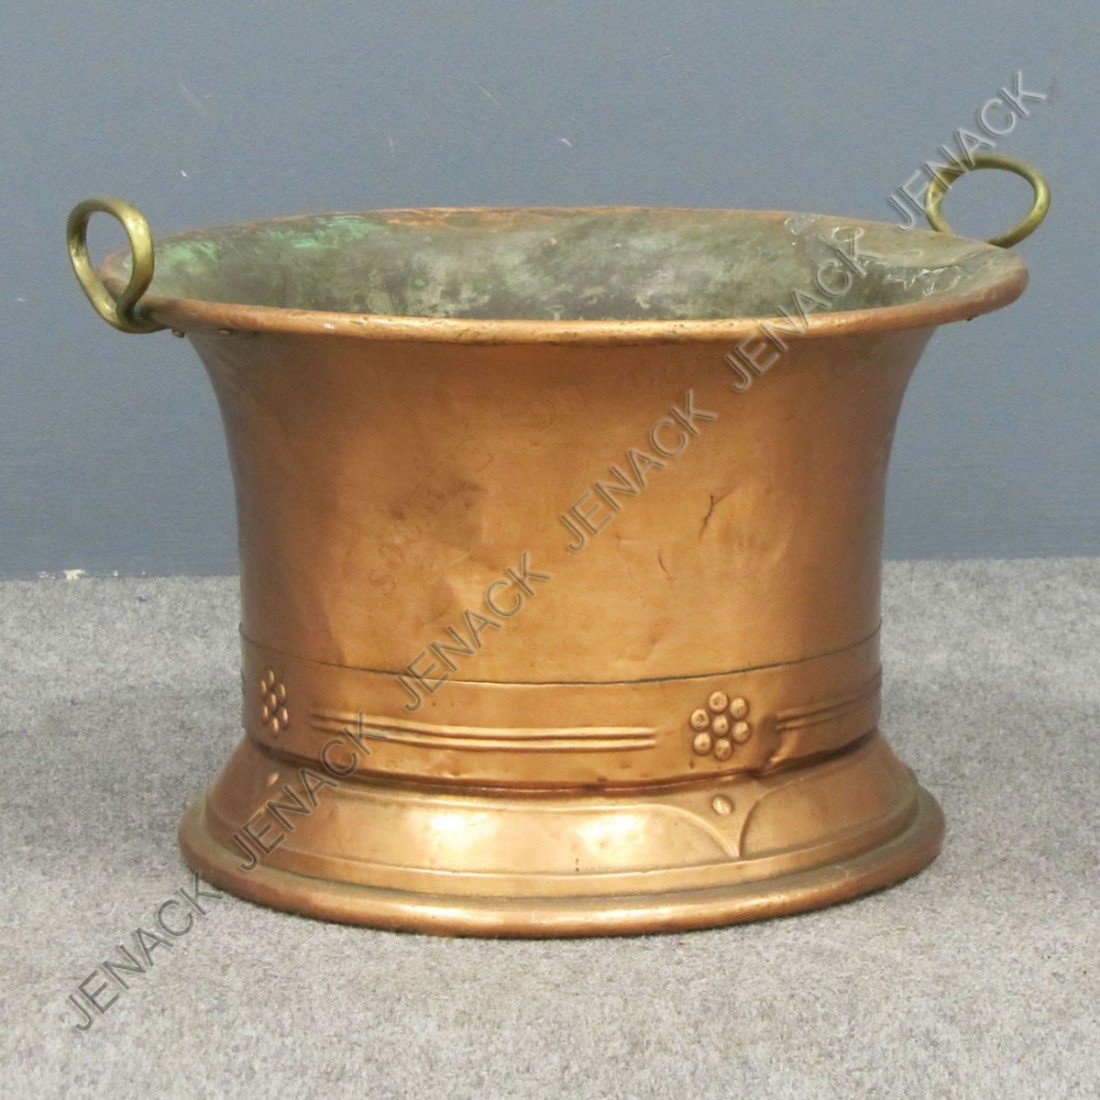 4: ENGLISH ARTS AND CRAFTS HAMMERED COPPER PLANTER